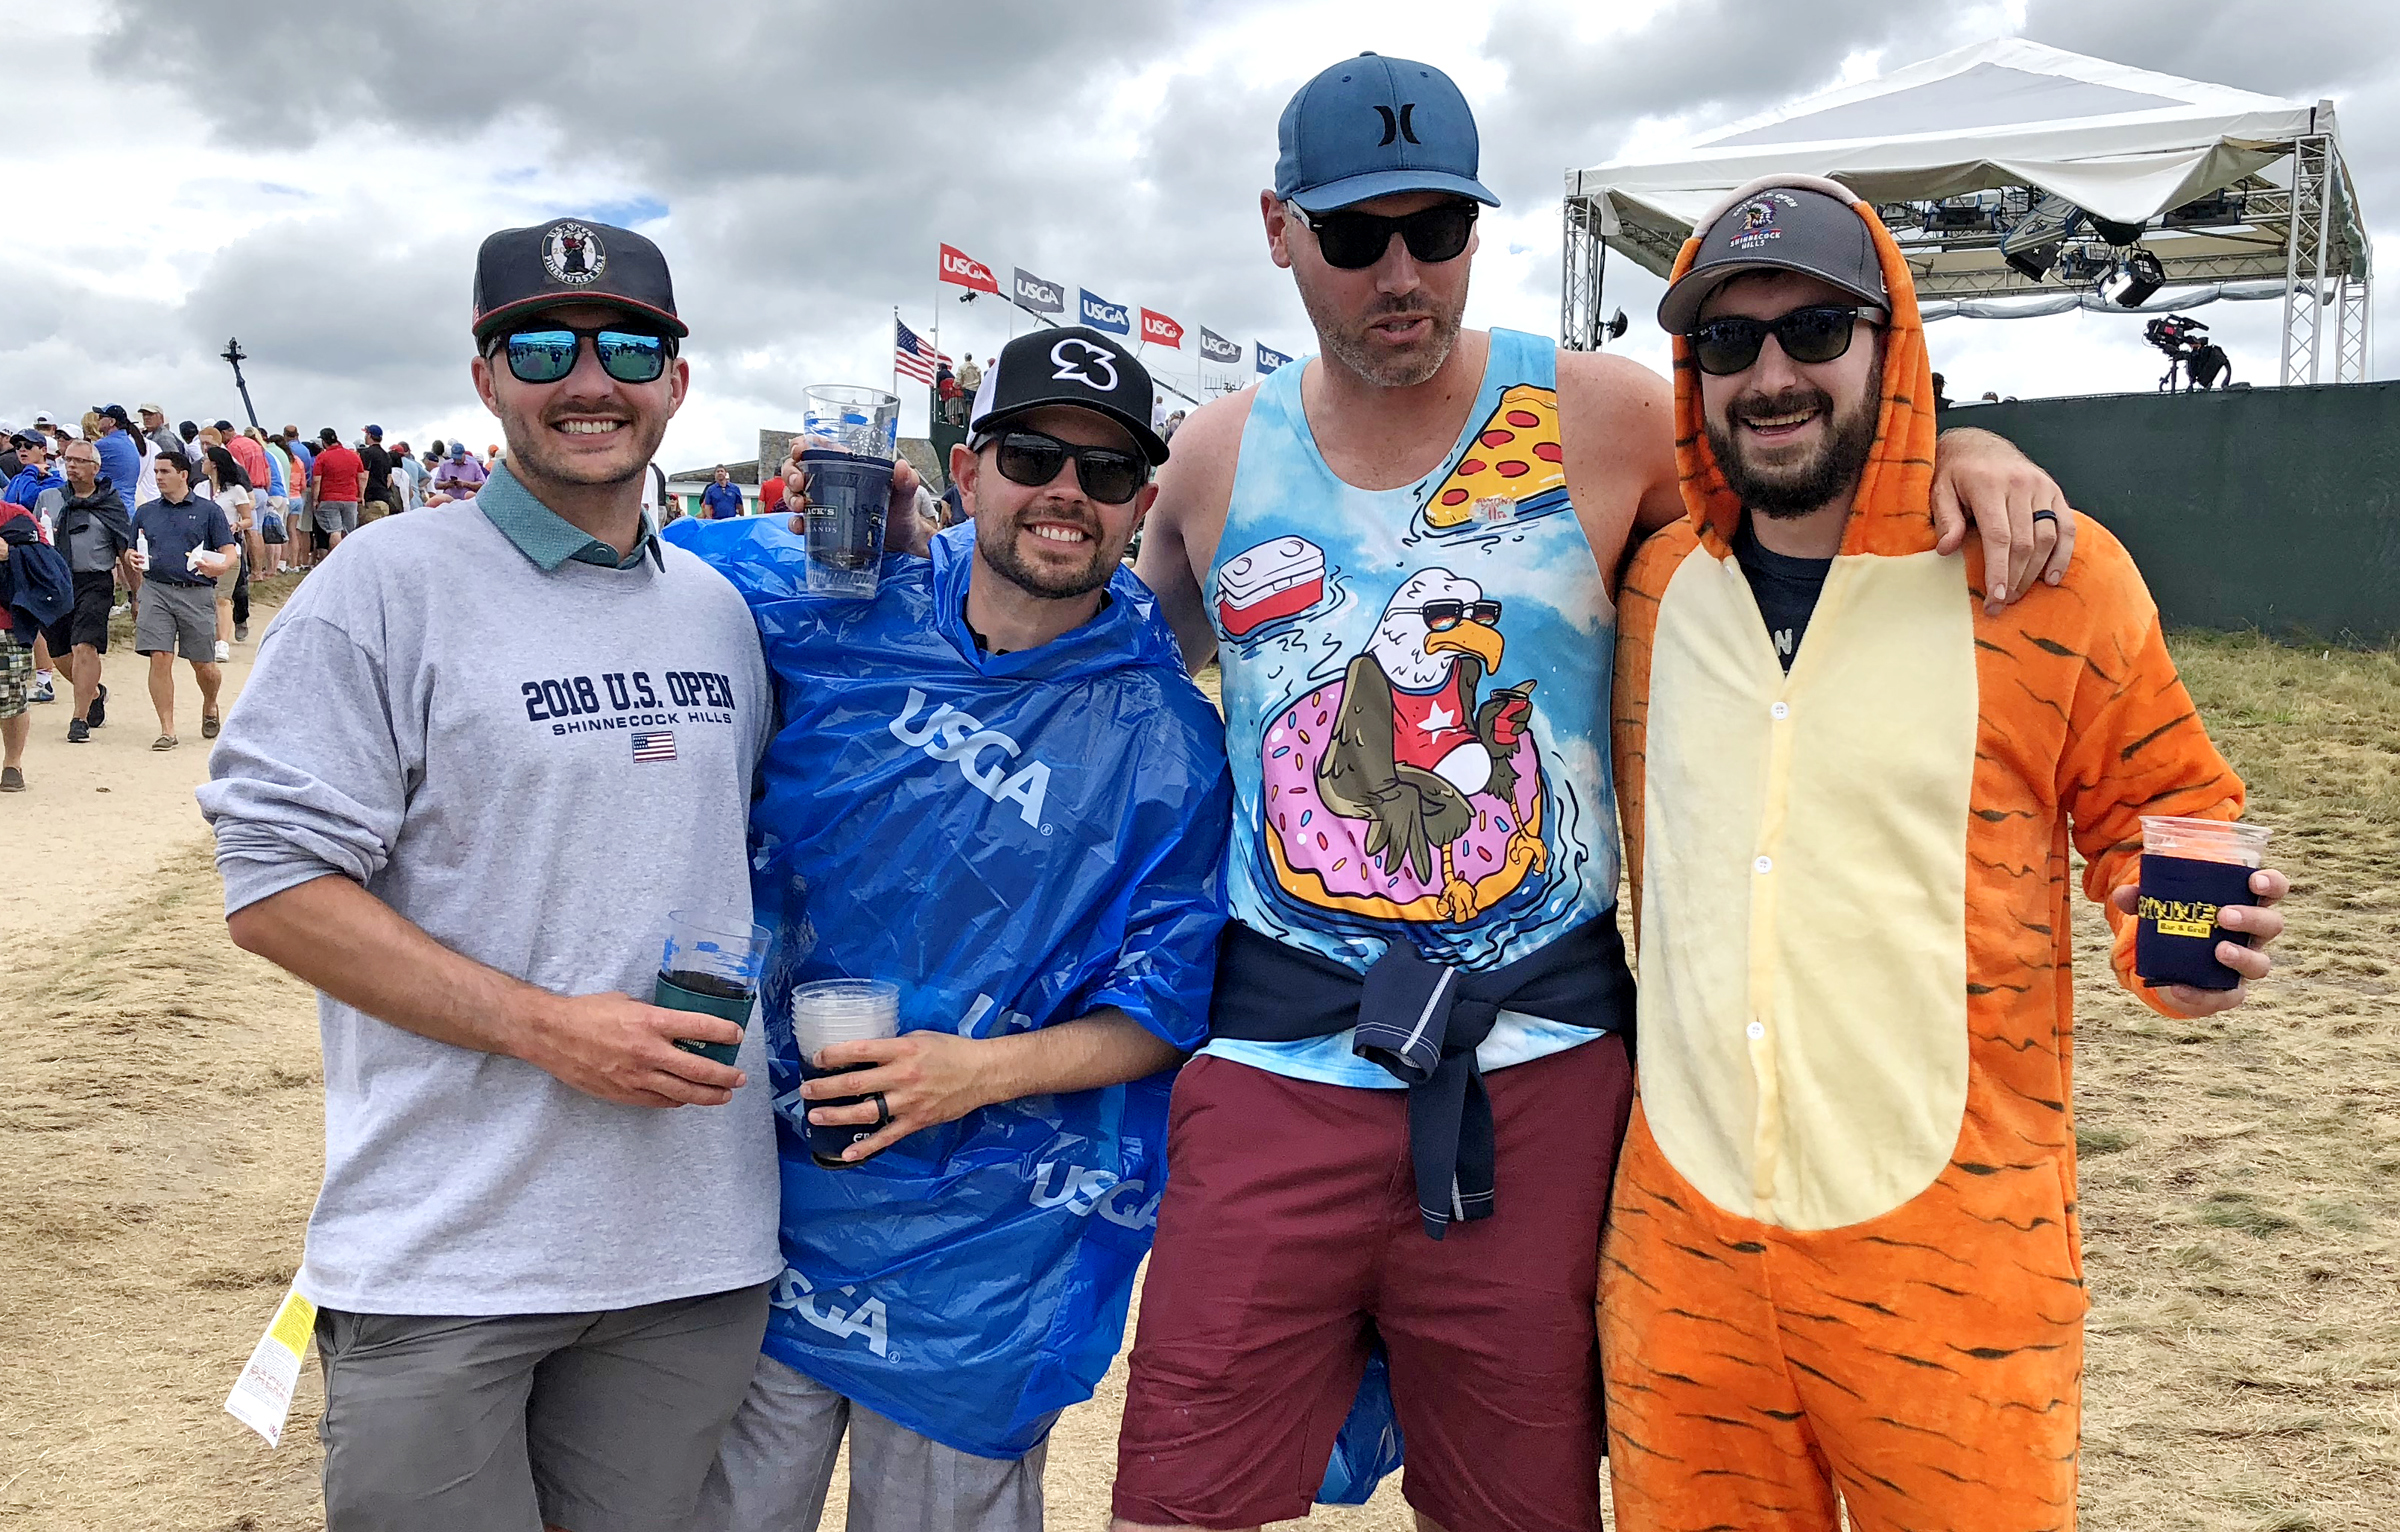 These buddies came from out west to watch the U.S. Open and Tiger Woods. From the left: Carter Hausel, 32, Los Angeles; Kevin Lewis, 31, Reno, Nev; Ken Kay, 33, Reno, Nev.; Braden Ankeny, 28, Las Vegas (in the Tiger costume).